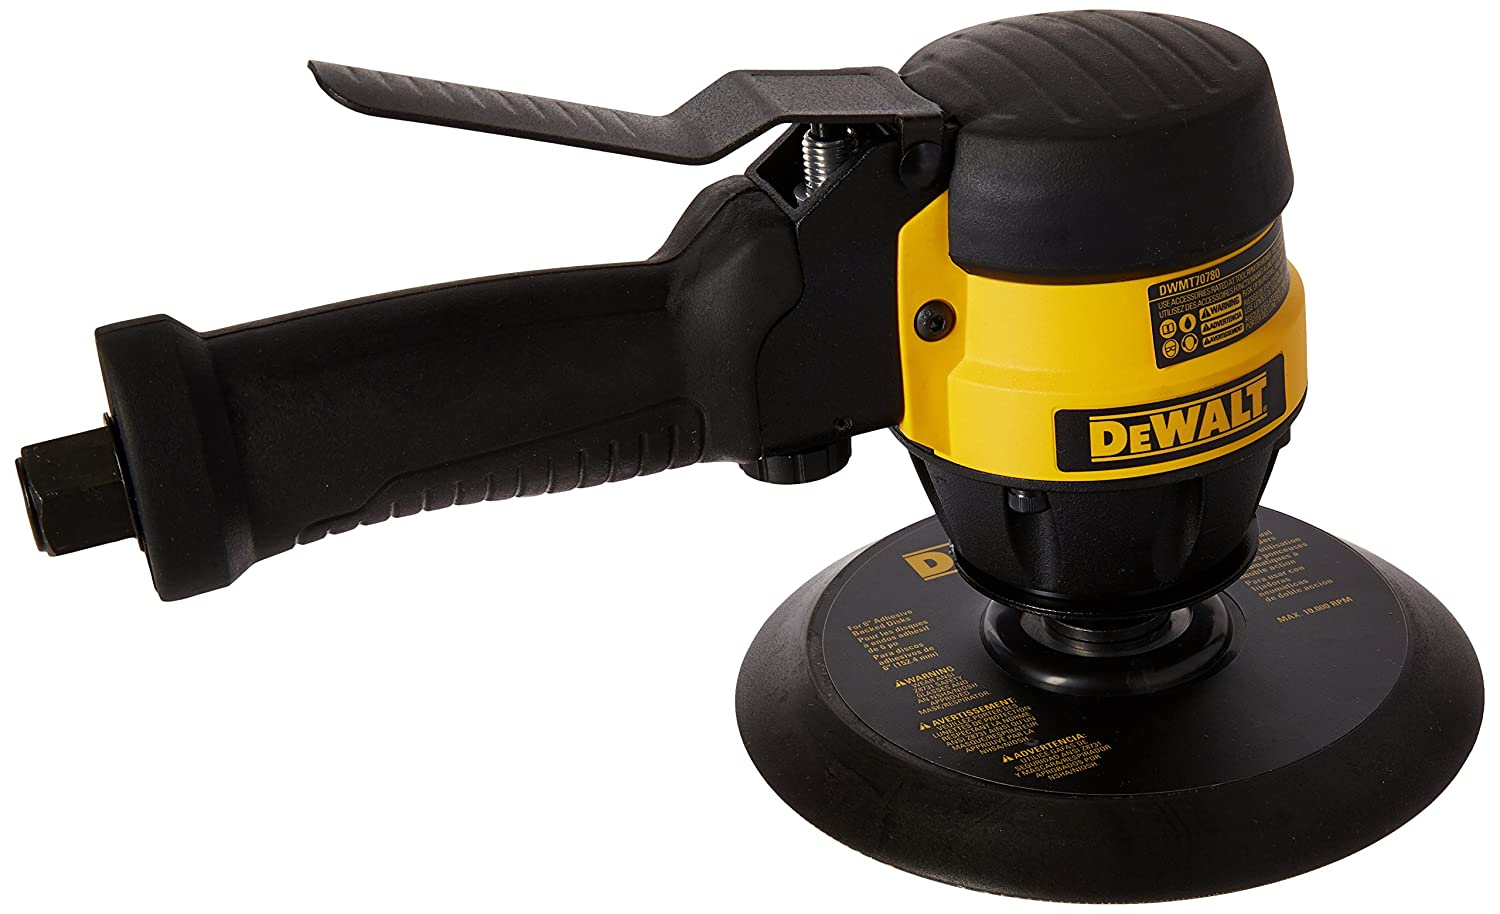 DEWALT DWMT70780 featured image